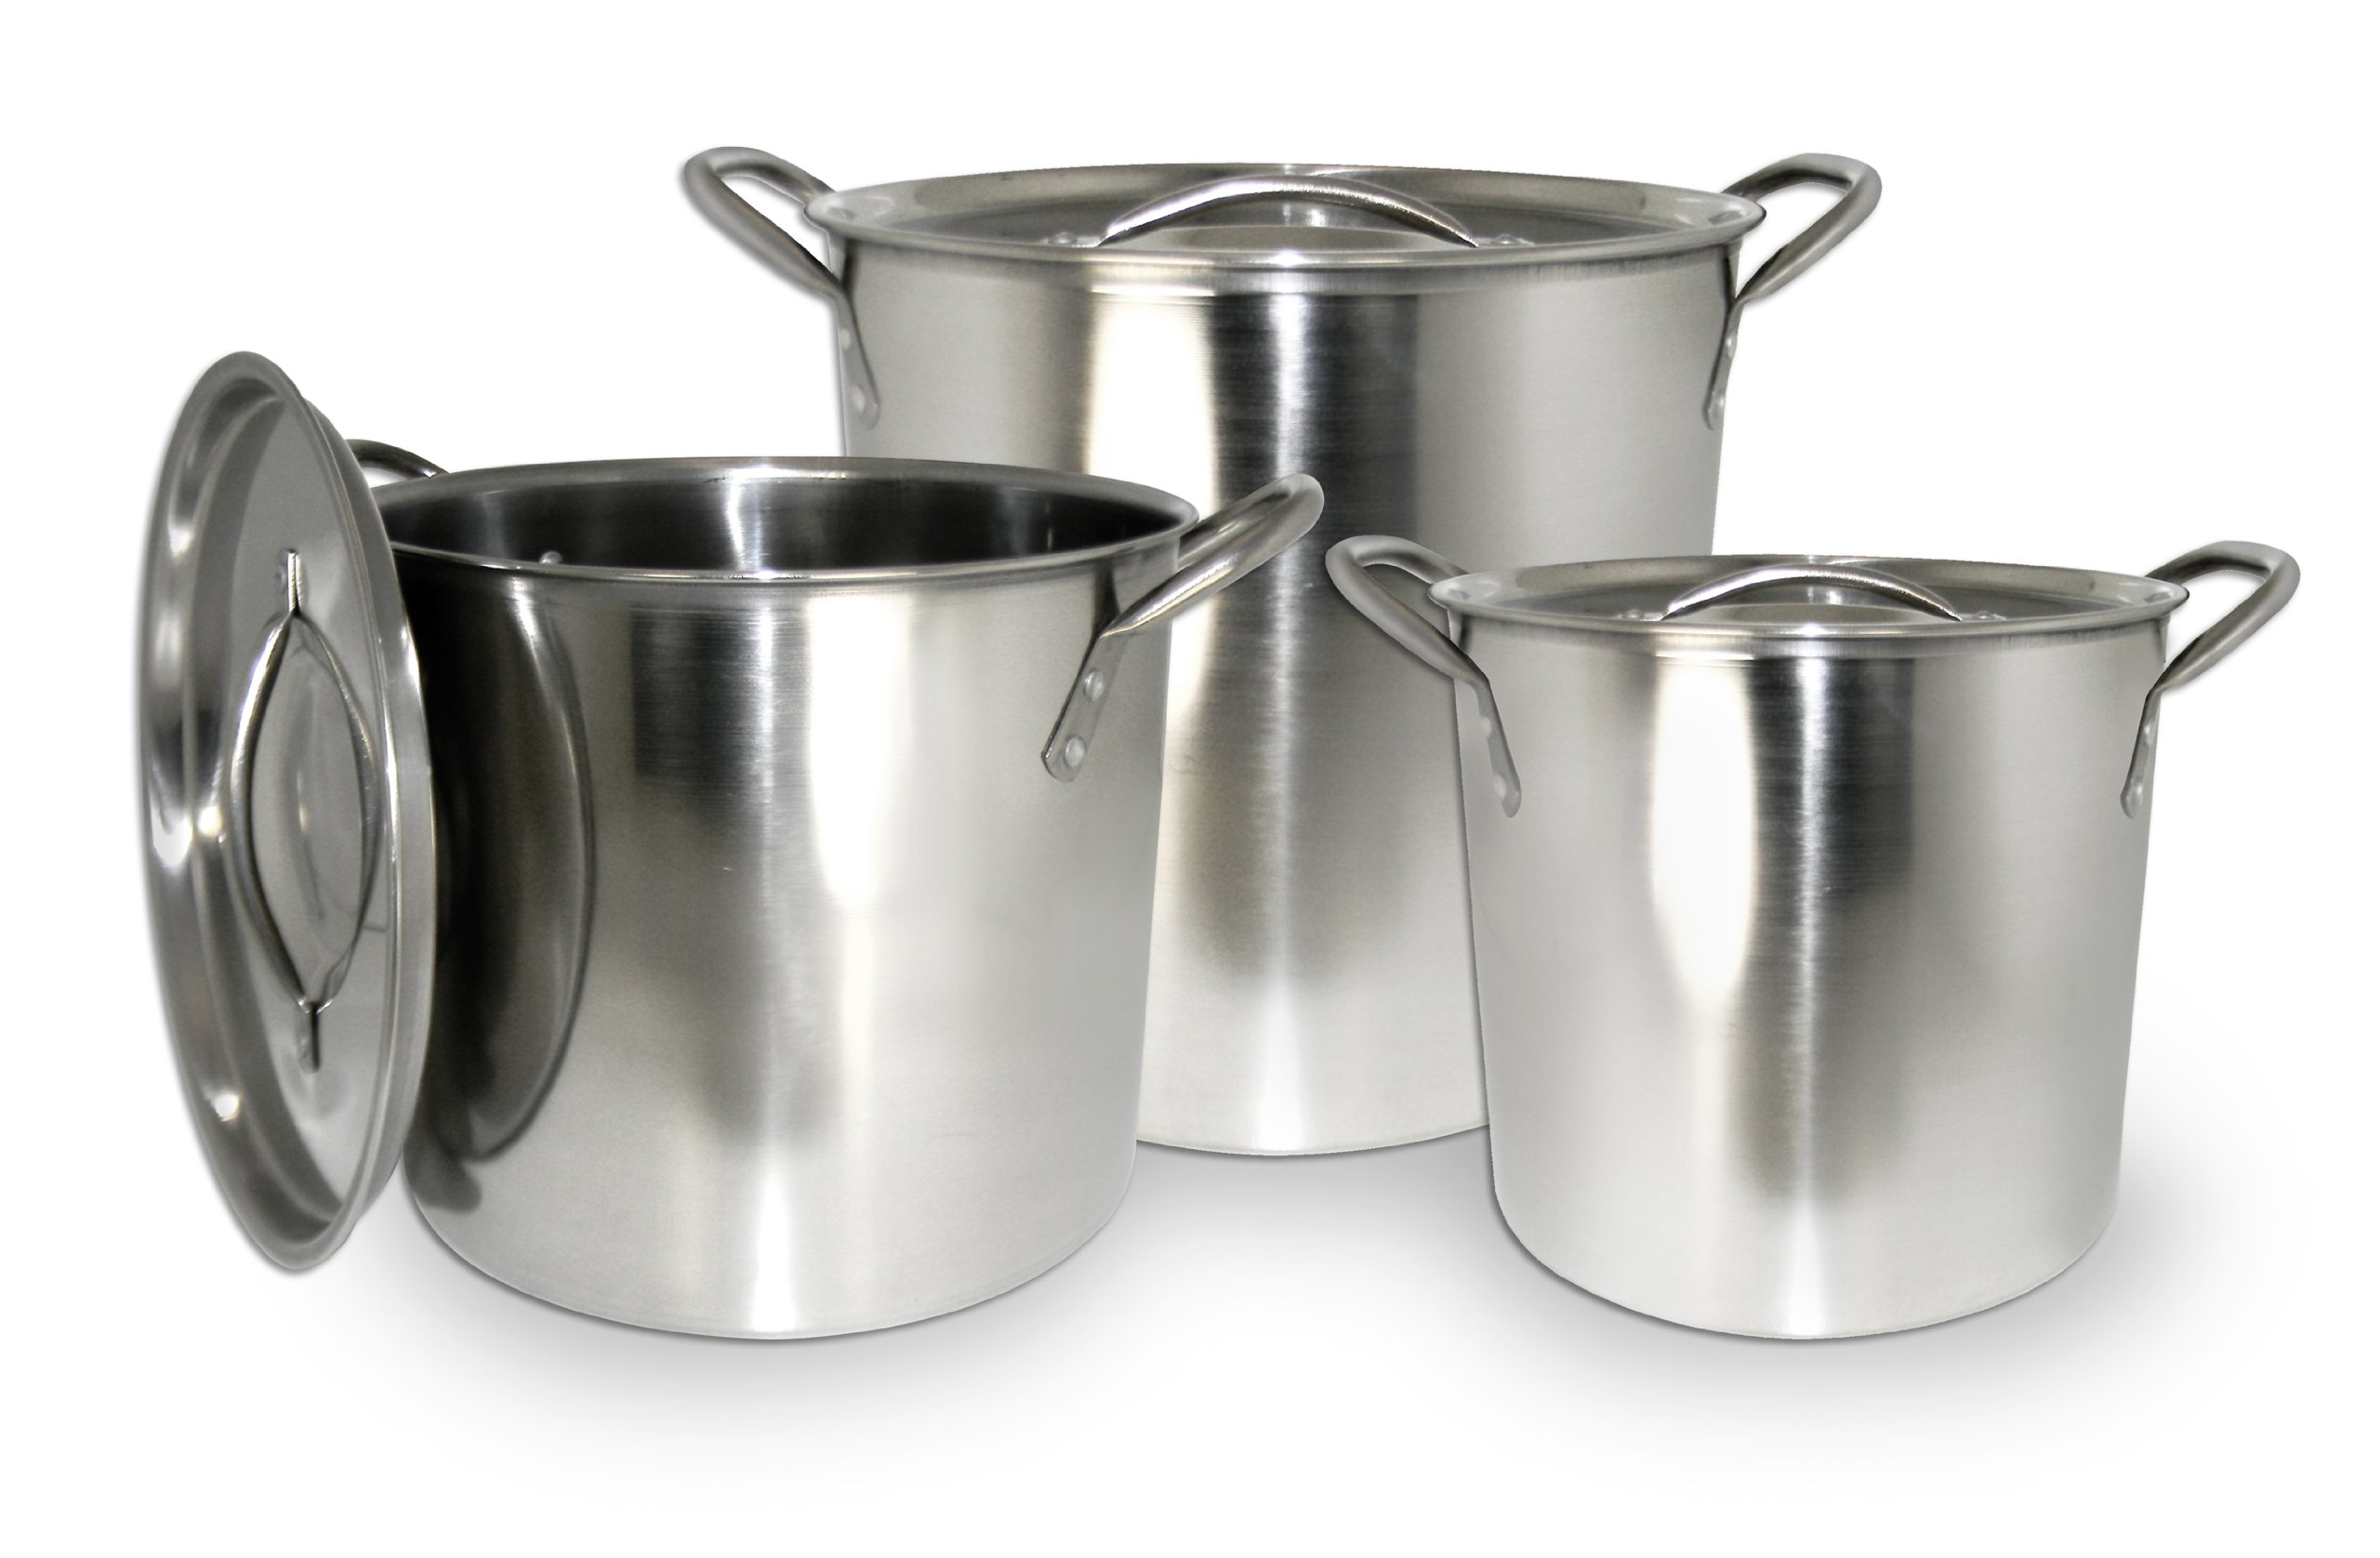 Excelsteel Set Of 3 Stainless Steel Stockpot With Lids by ExcelSteel (Image #1)